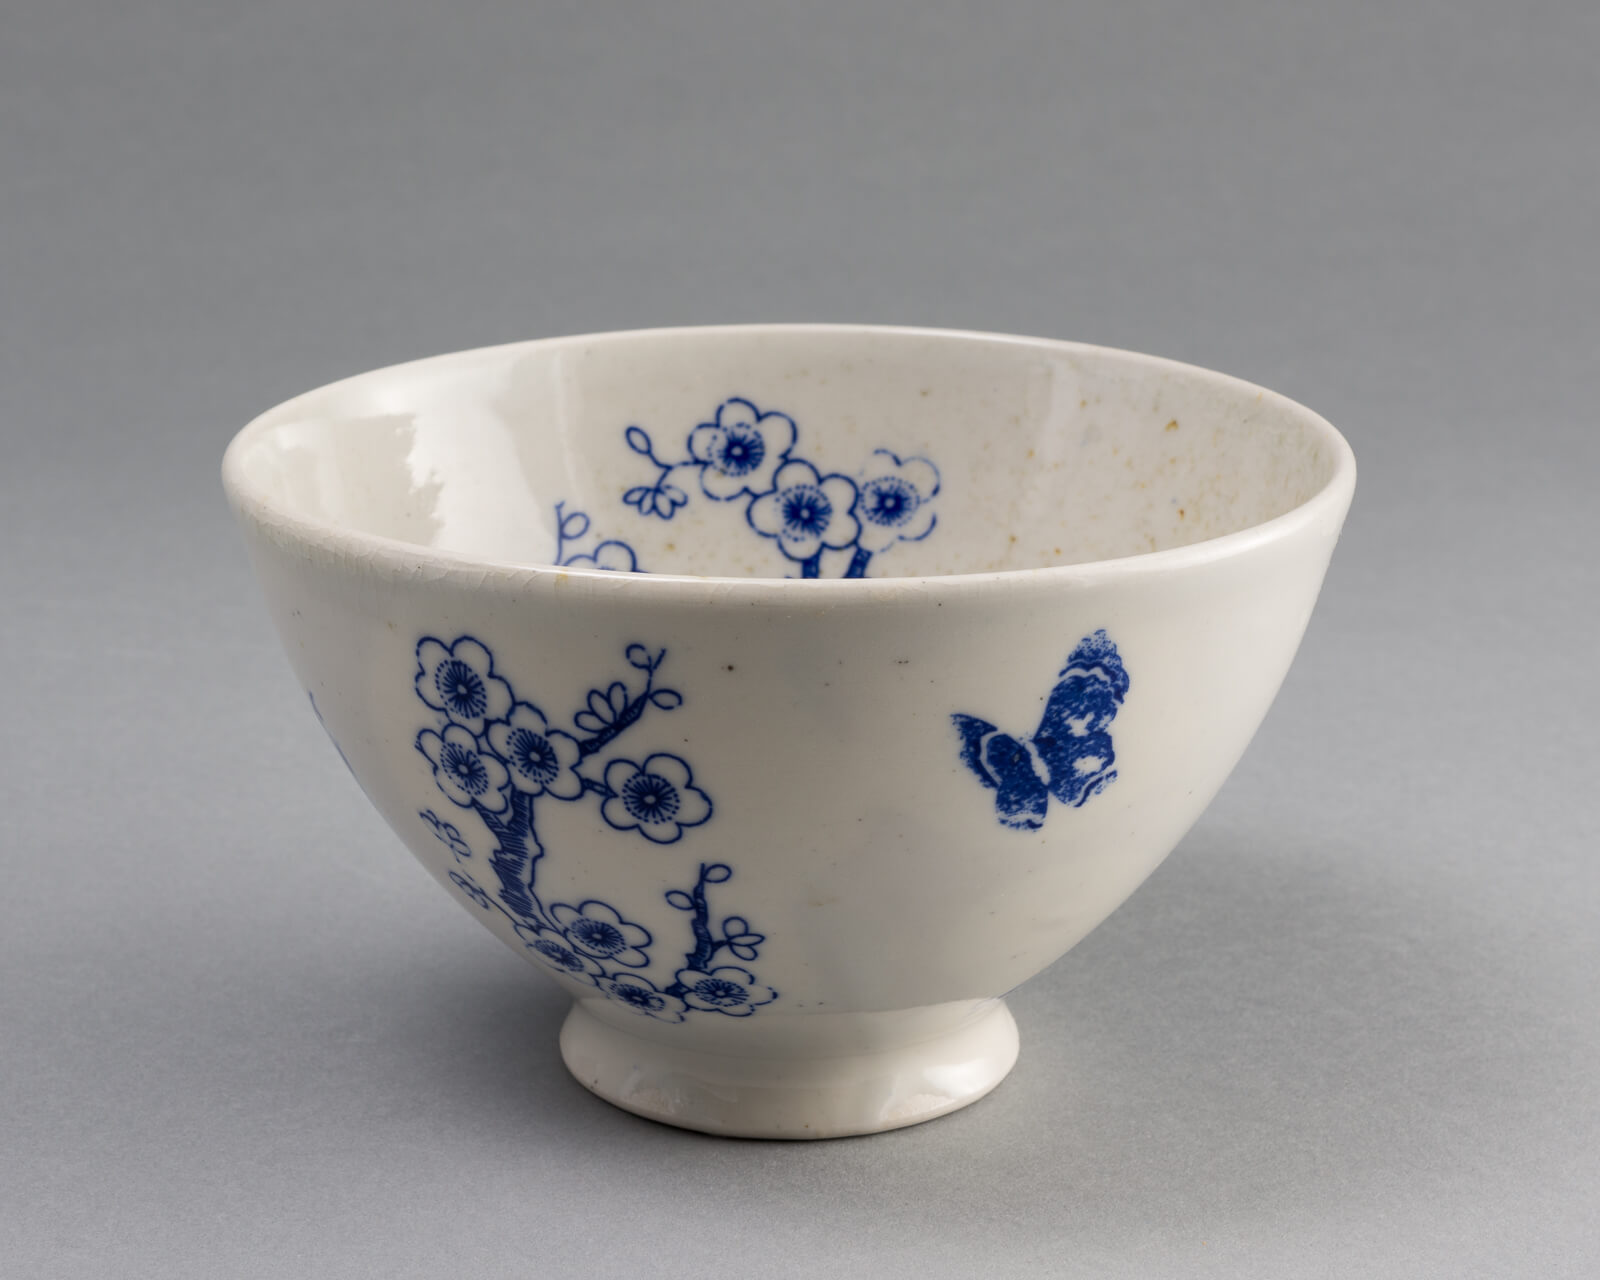 Bowl, wood-fired porcelain with cobalt decals